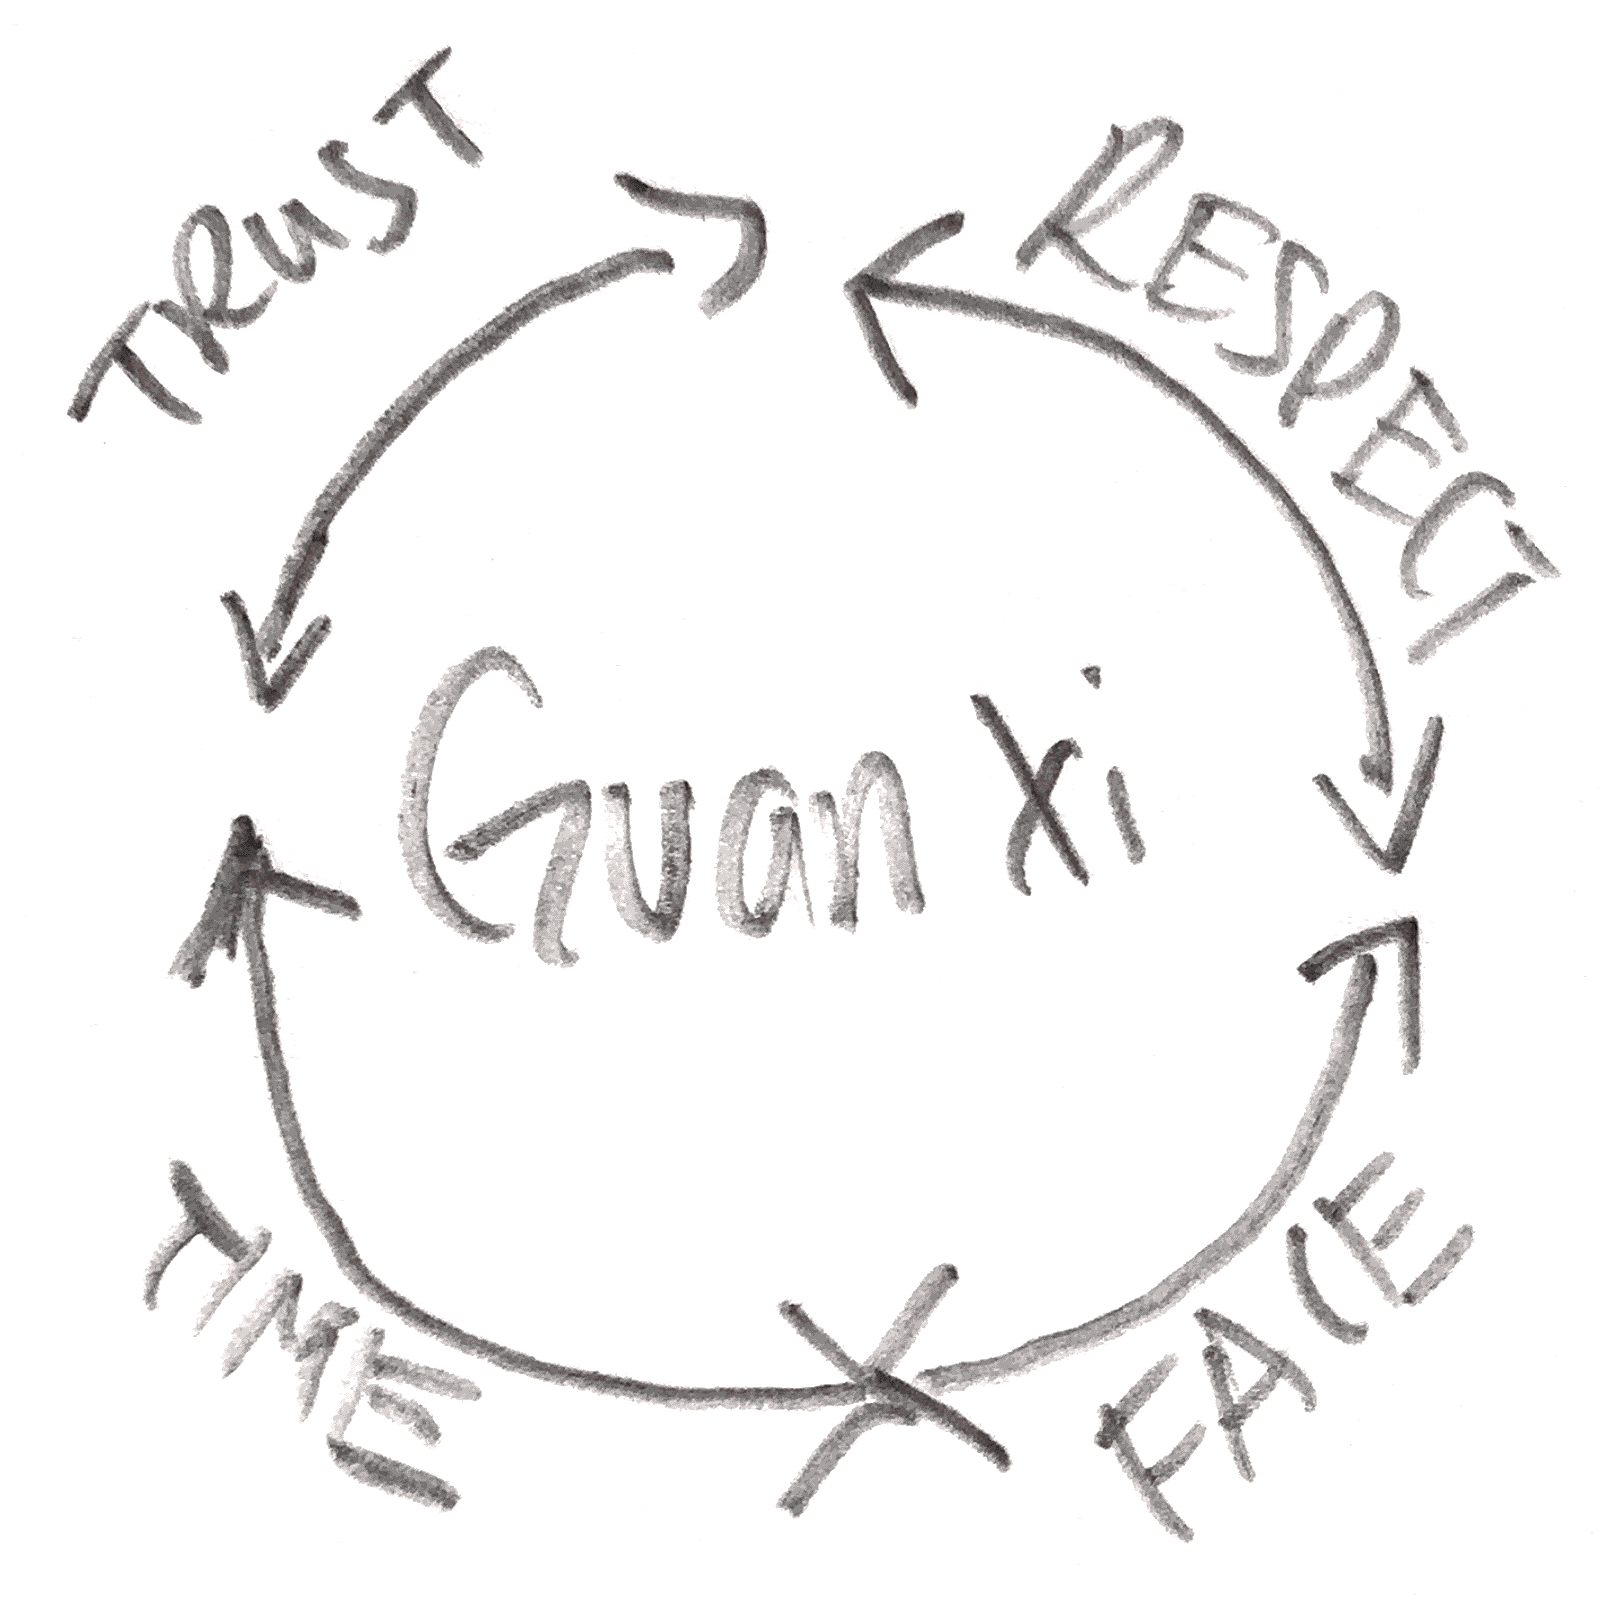 how to build guanxi in china